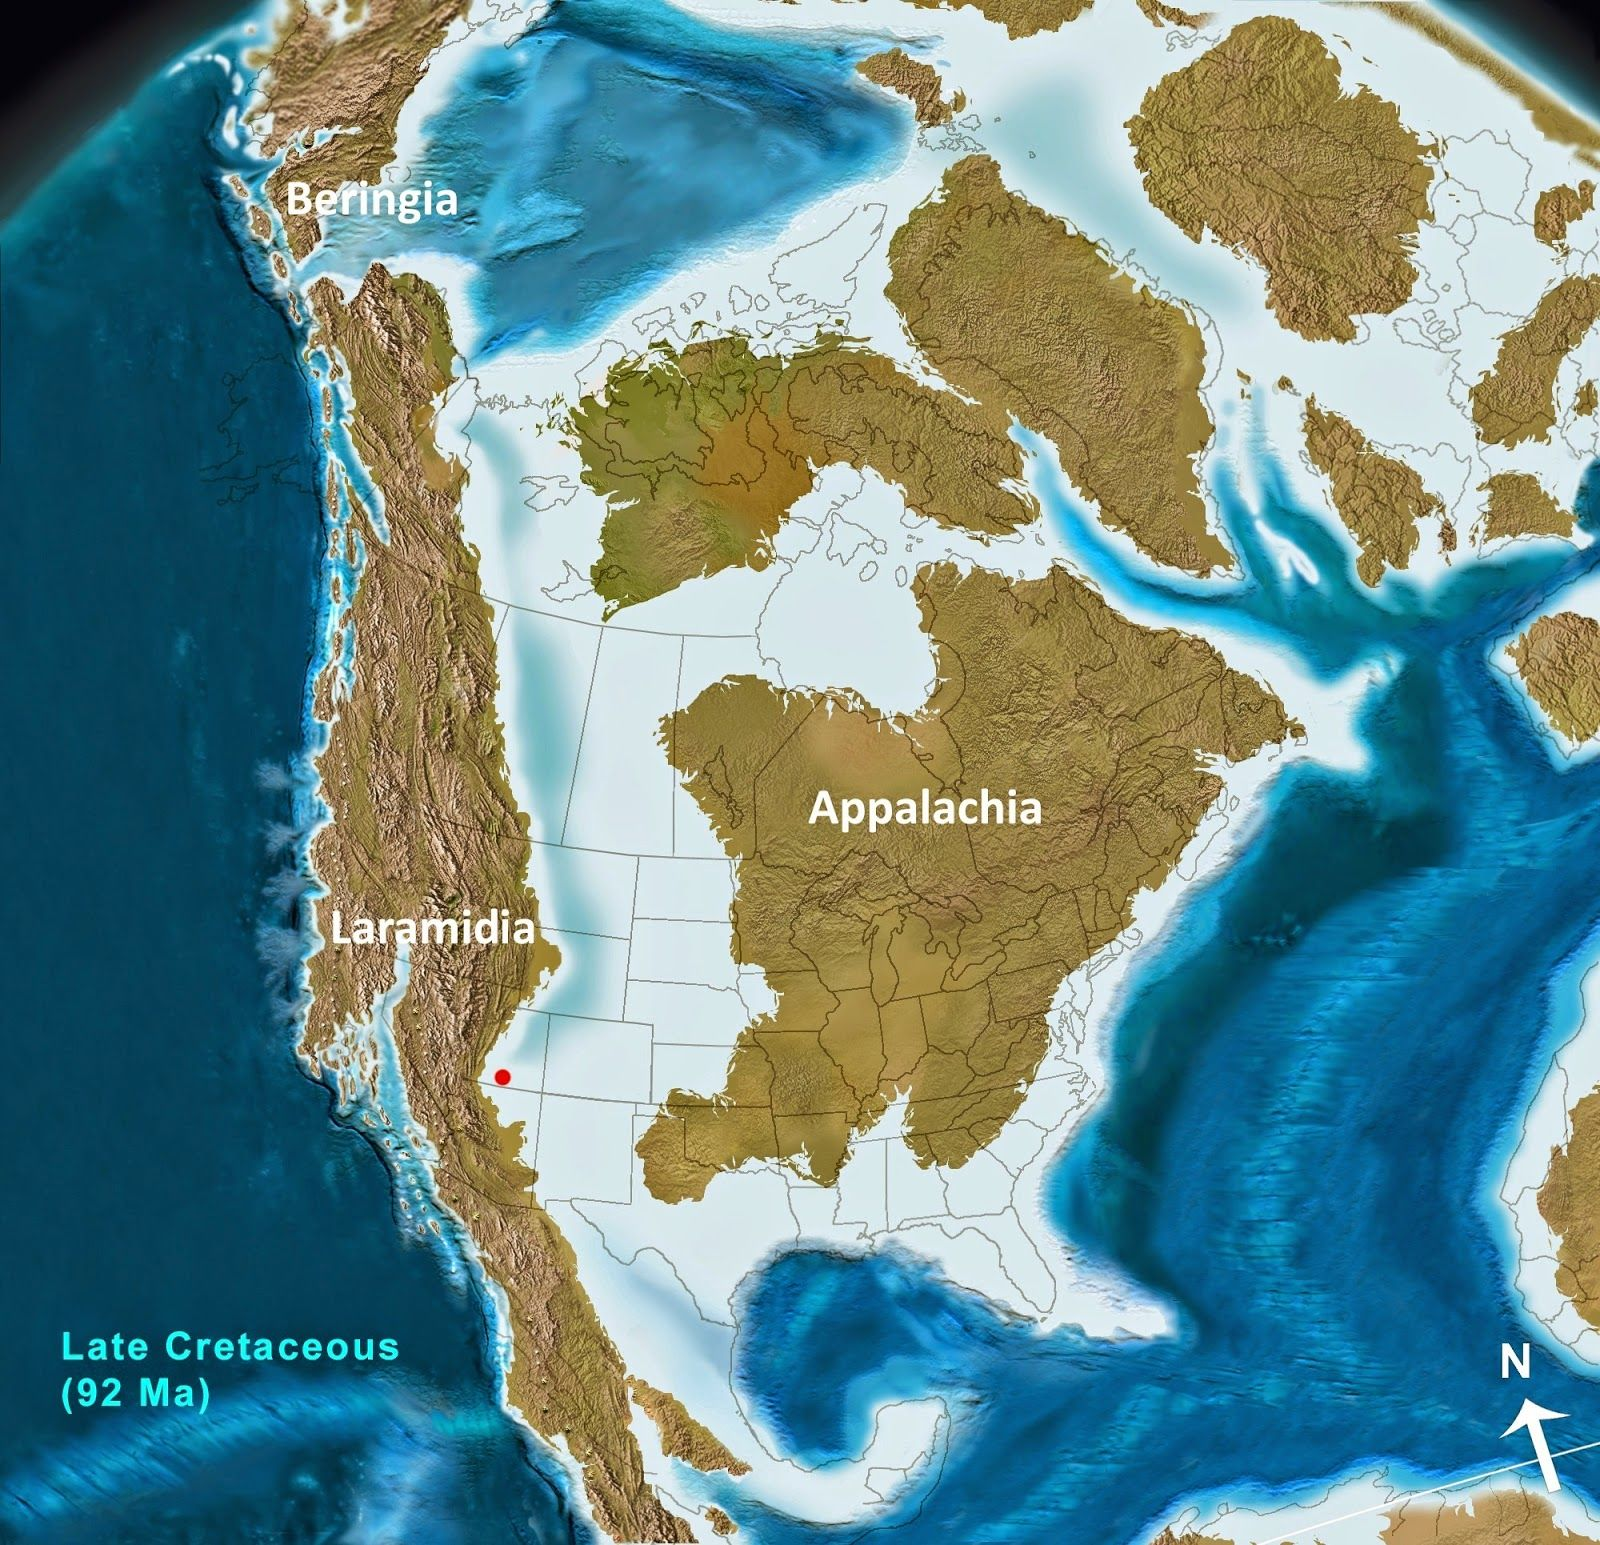 North America in the Late Cretaceous 92